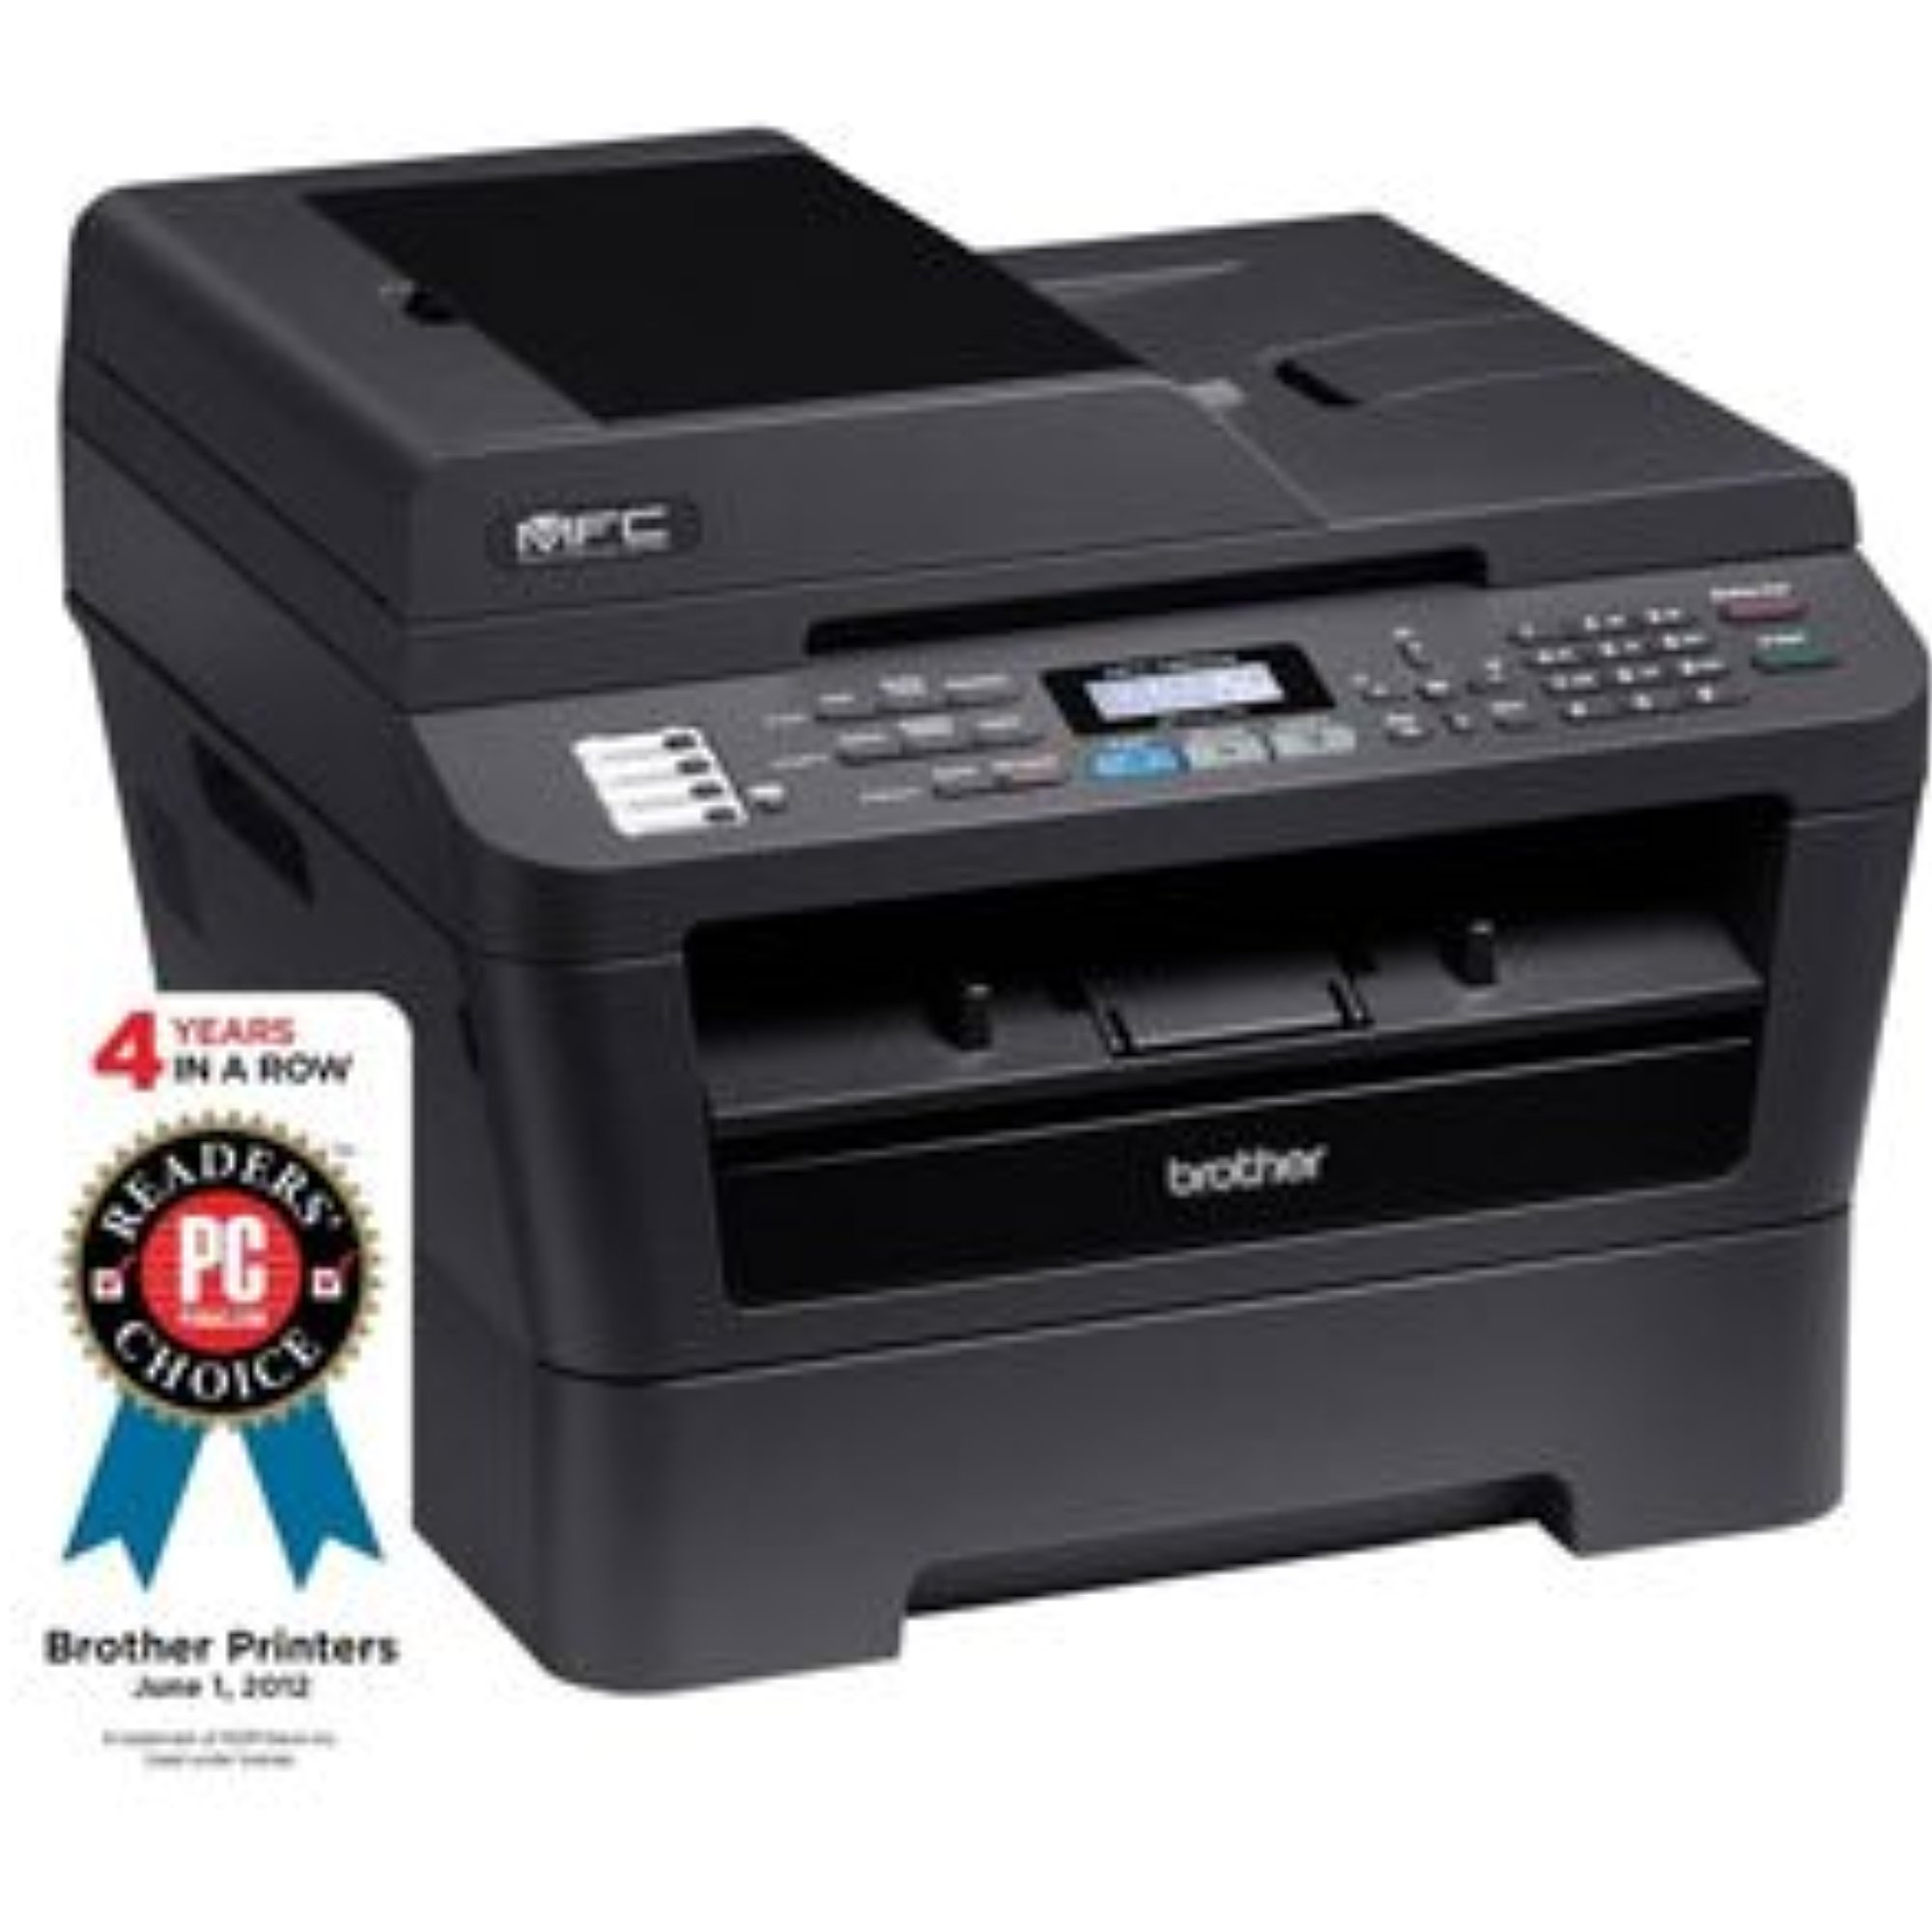 Refurbished Brother MFC-7860DW MFP All-in-One Multifunction Laser Printer by Brother